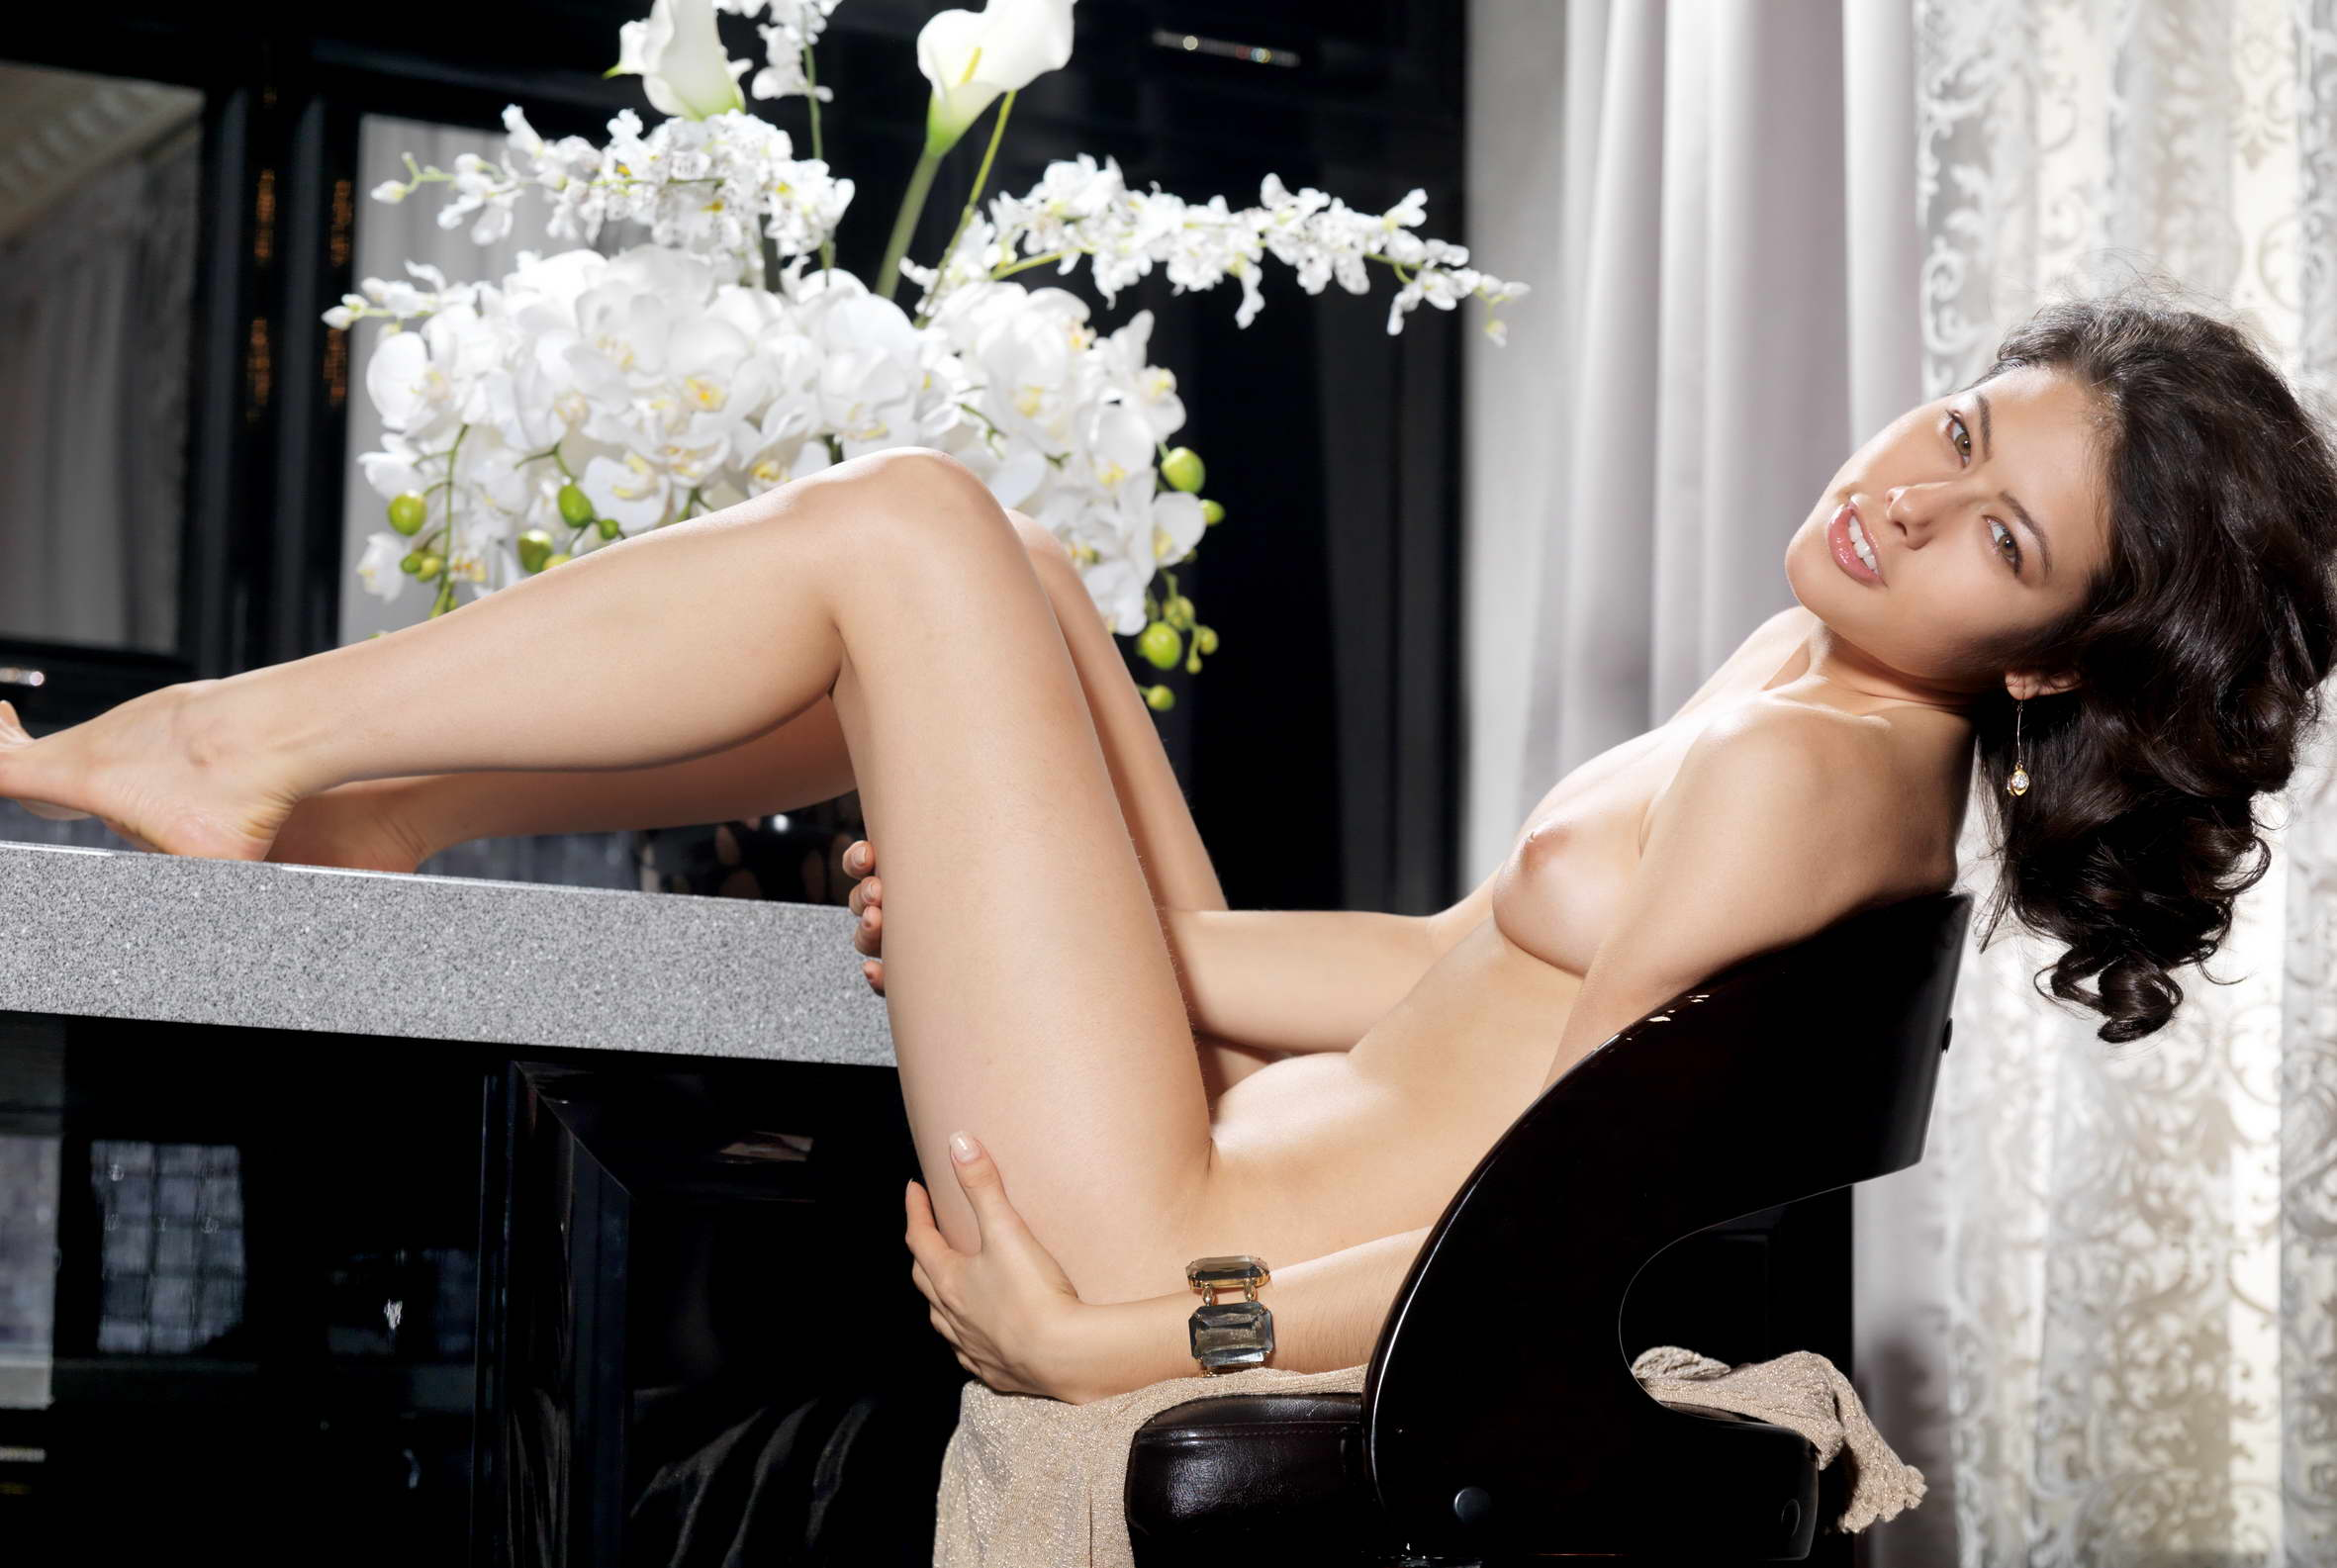 I always delight in the support of incredible and attractive girls by means of beautiful escorts in London